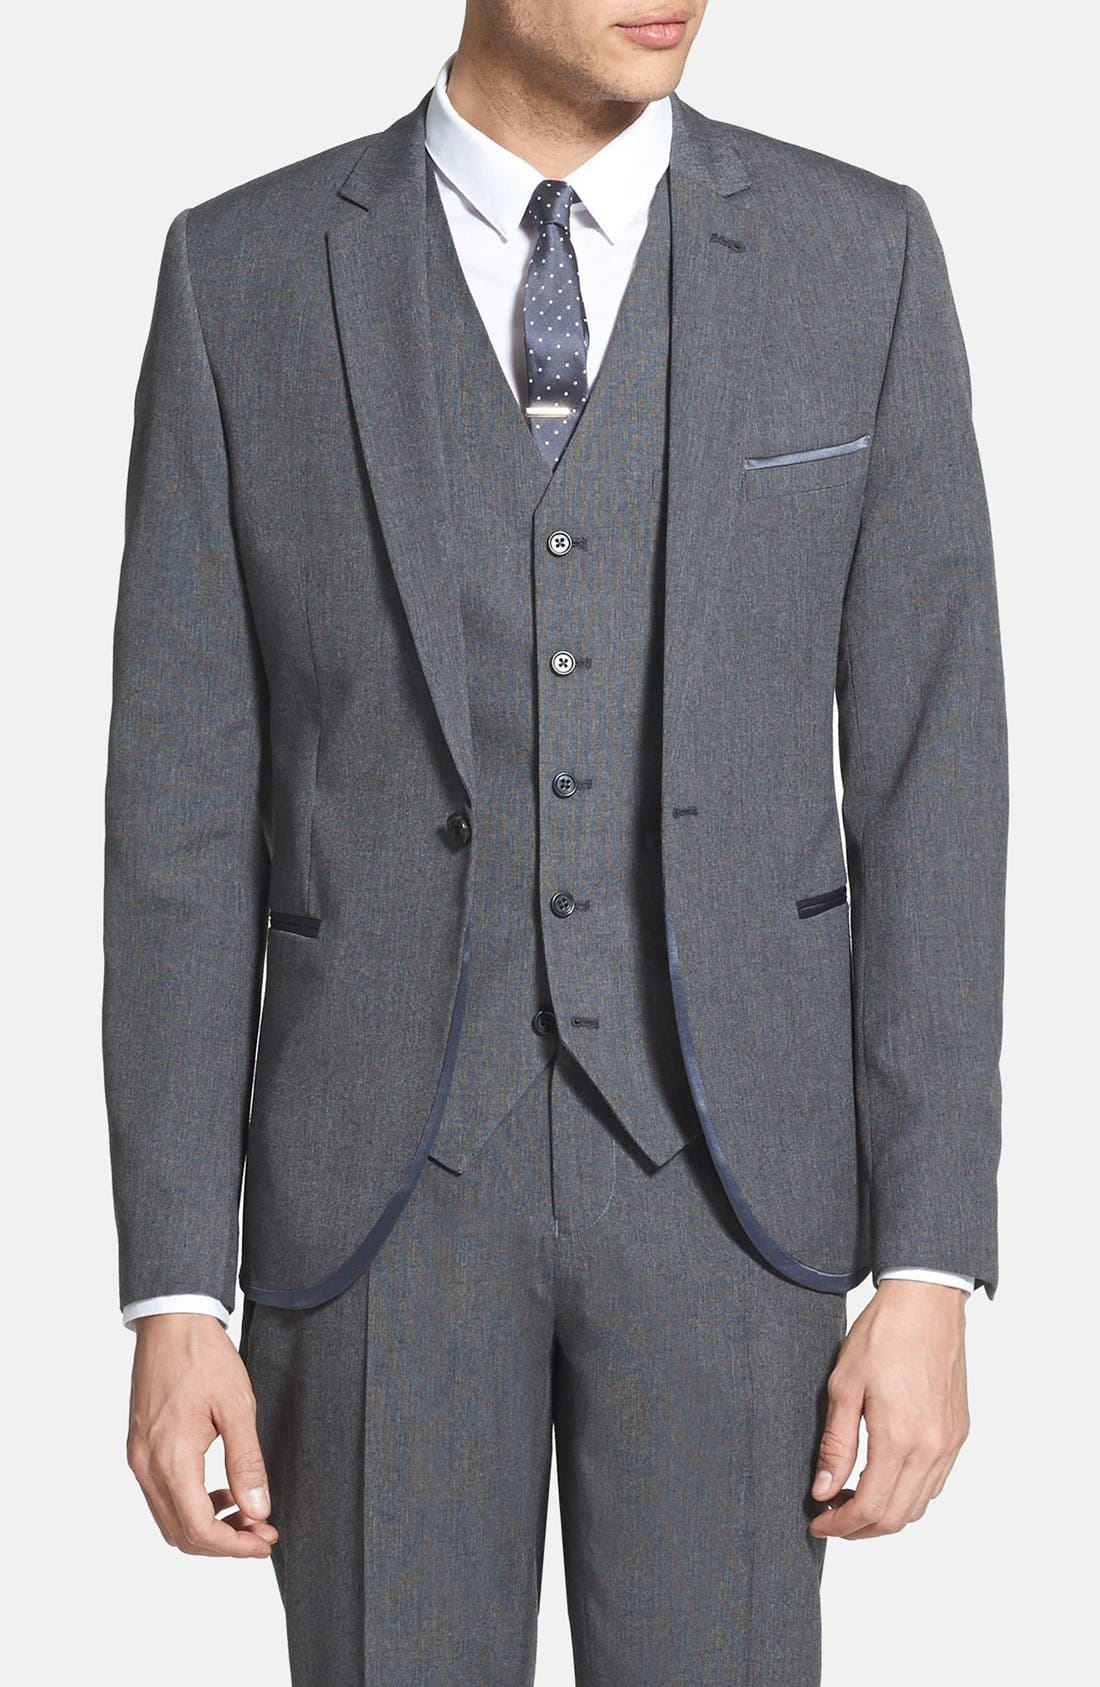 Main Image - Topman Skinny Fit Satin Trim Grey Suit Jacket